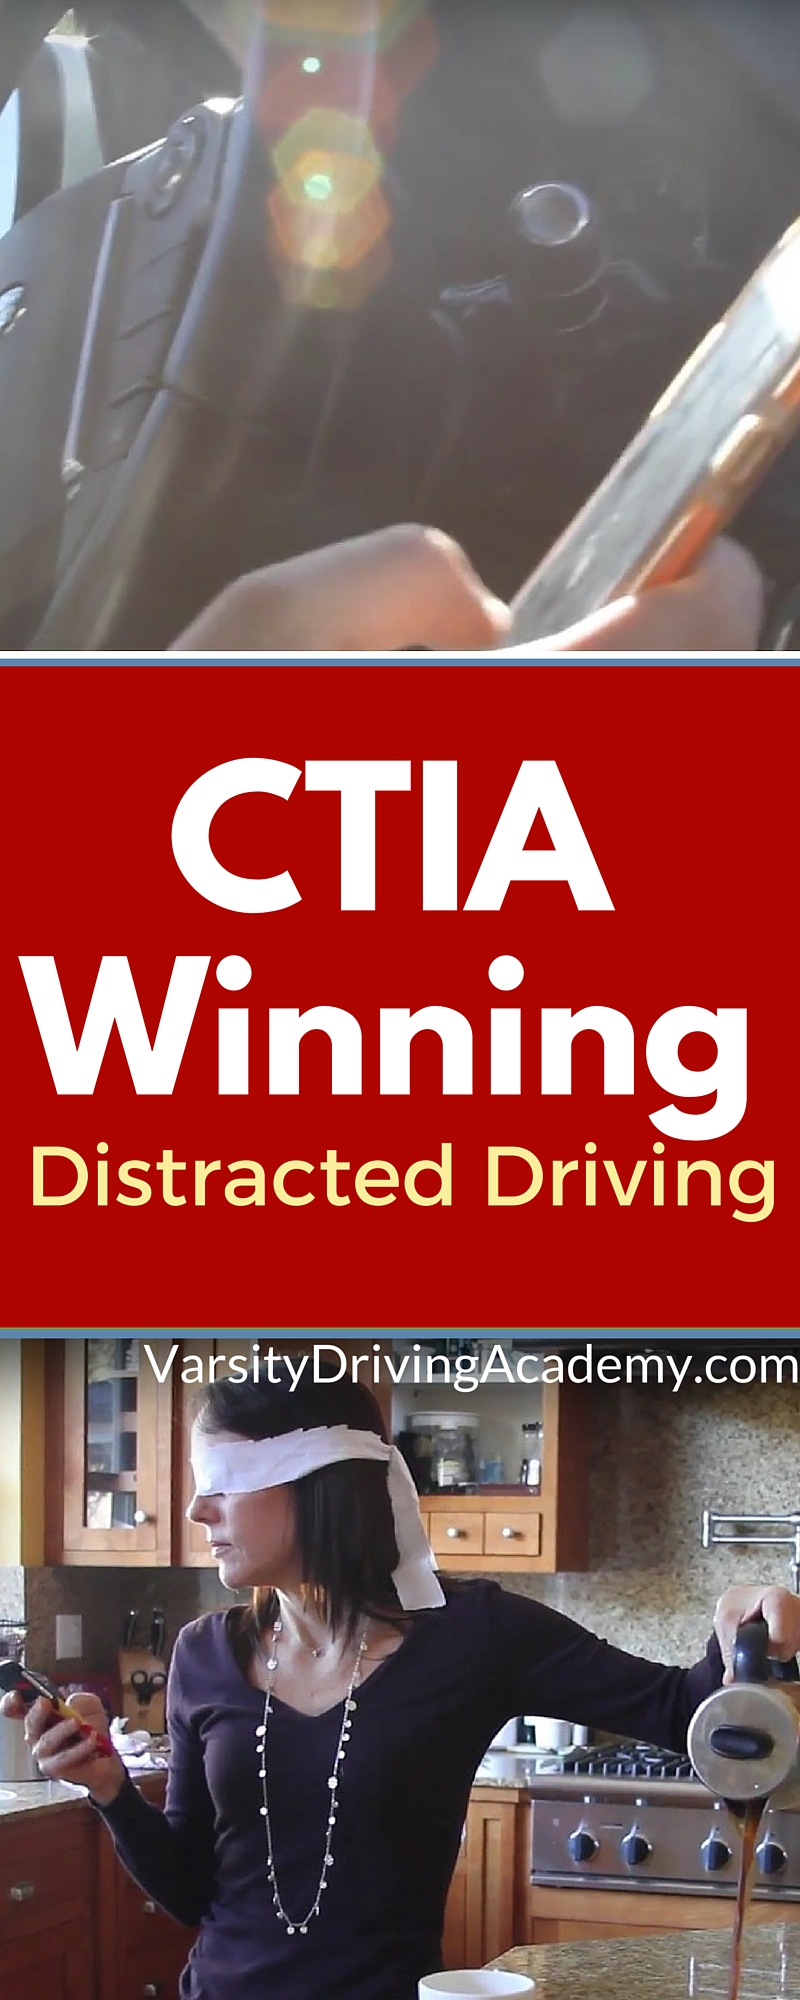 The CTIA held a contest to search for a filmmaker who can properly represent the dangers of distracted driving and an Irvine teen won. Using a blindfold, the dangers of distracted driving are powerfully represented in 30 seconds.